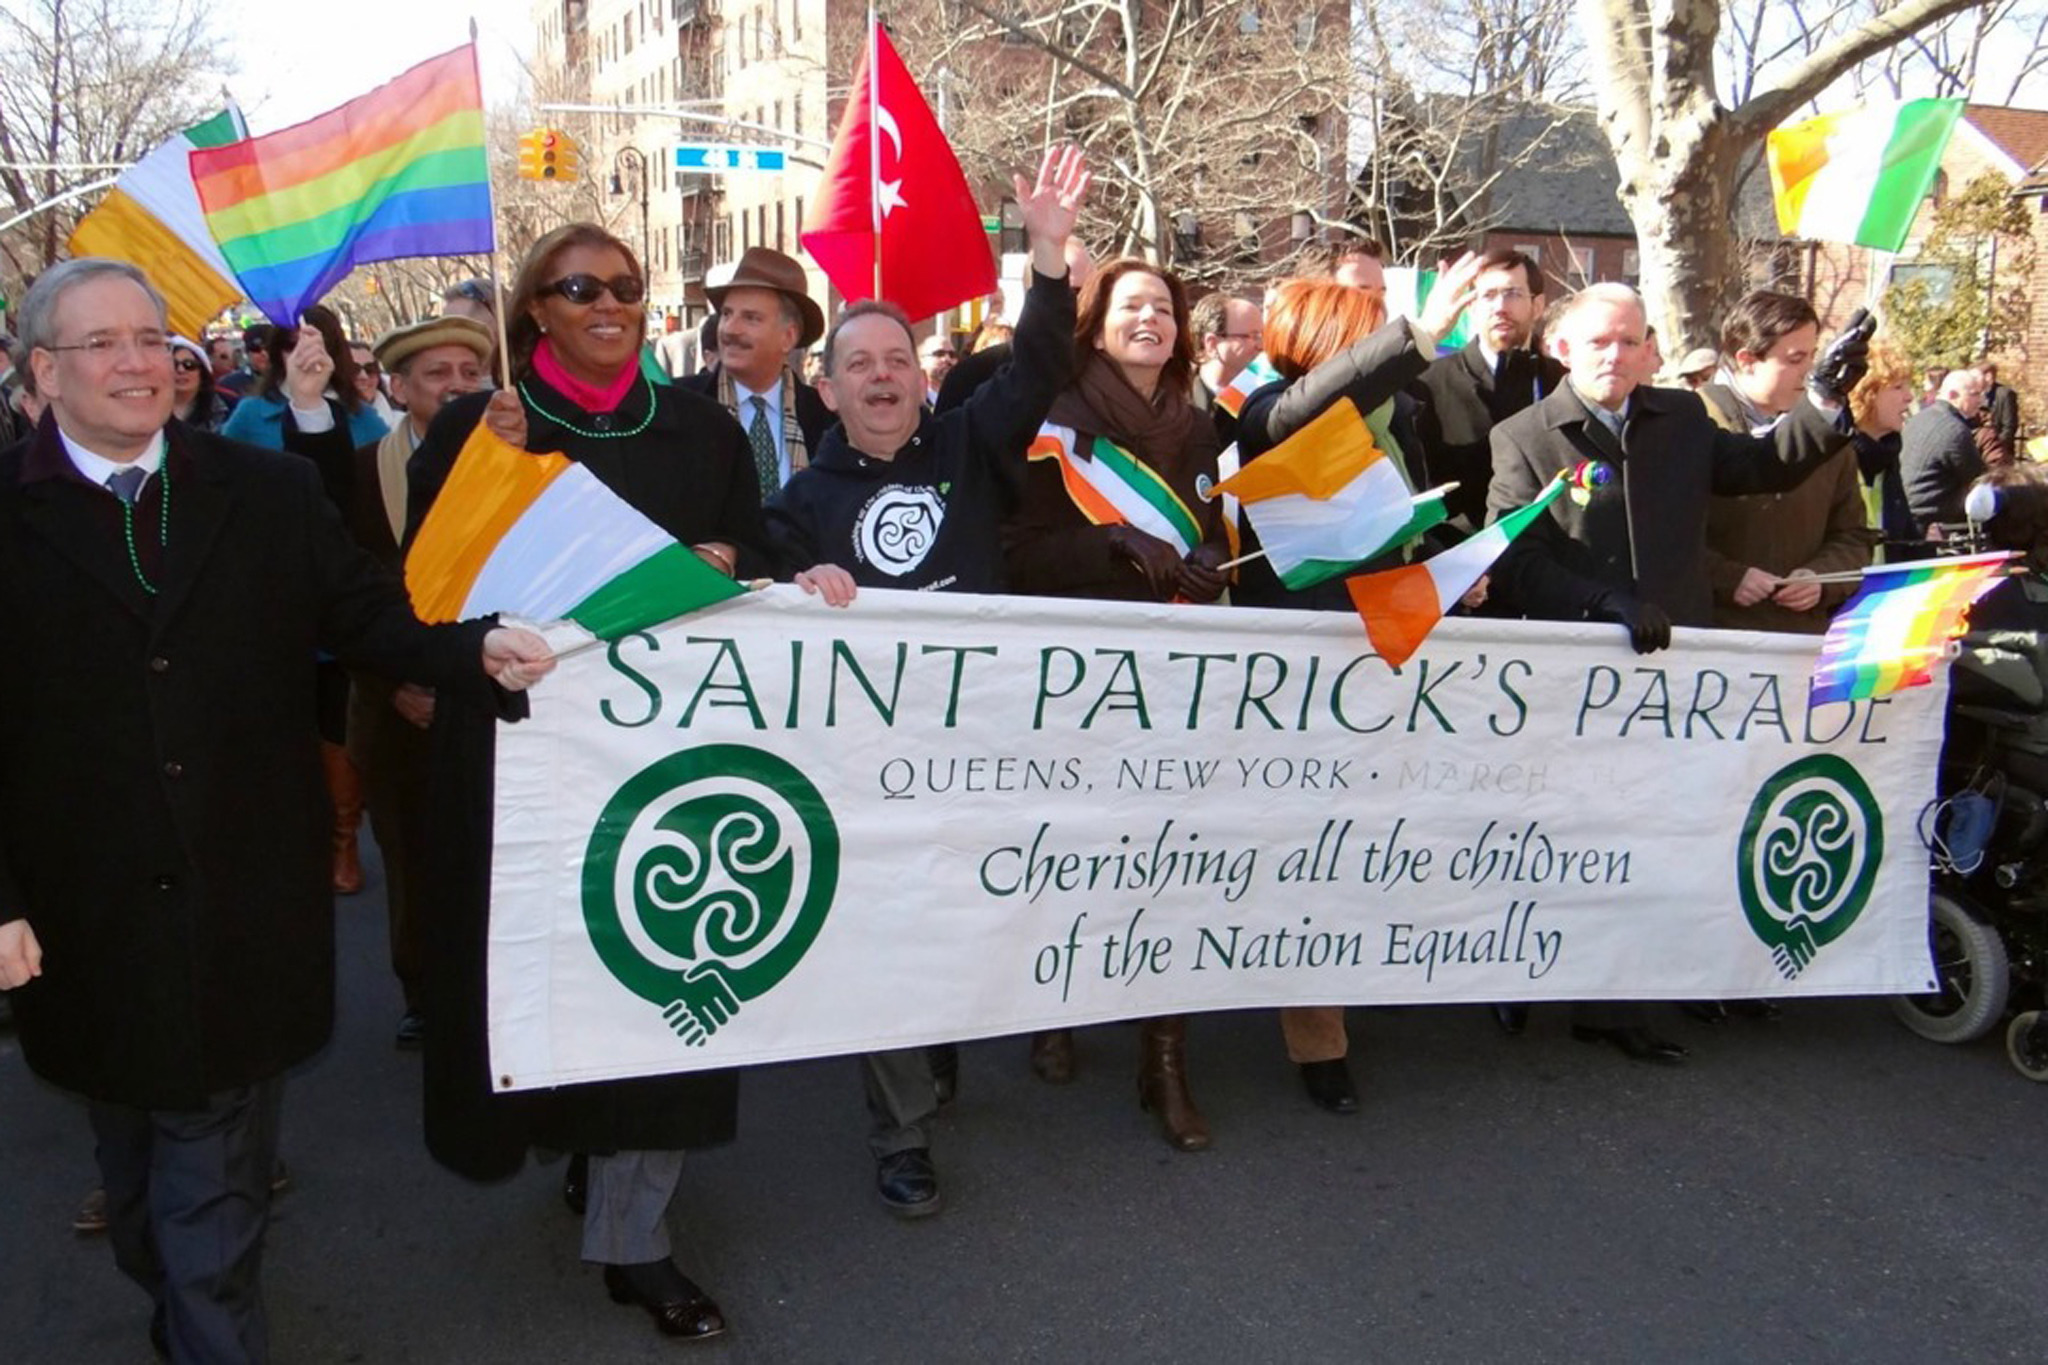 City Council joins De Blasio in skipping St. Patrick's Day Parade